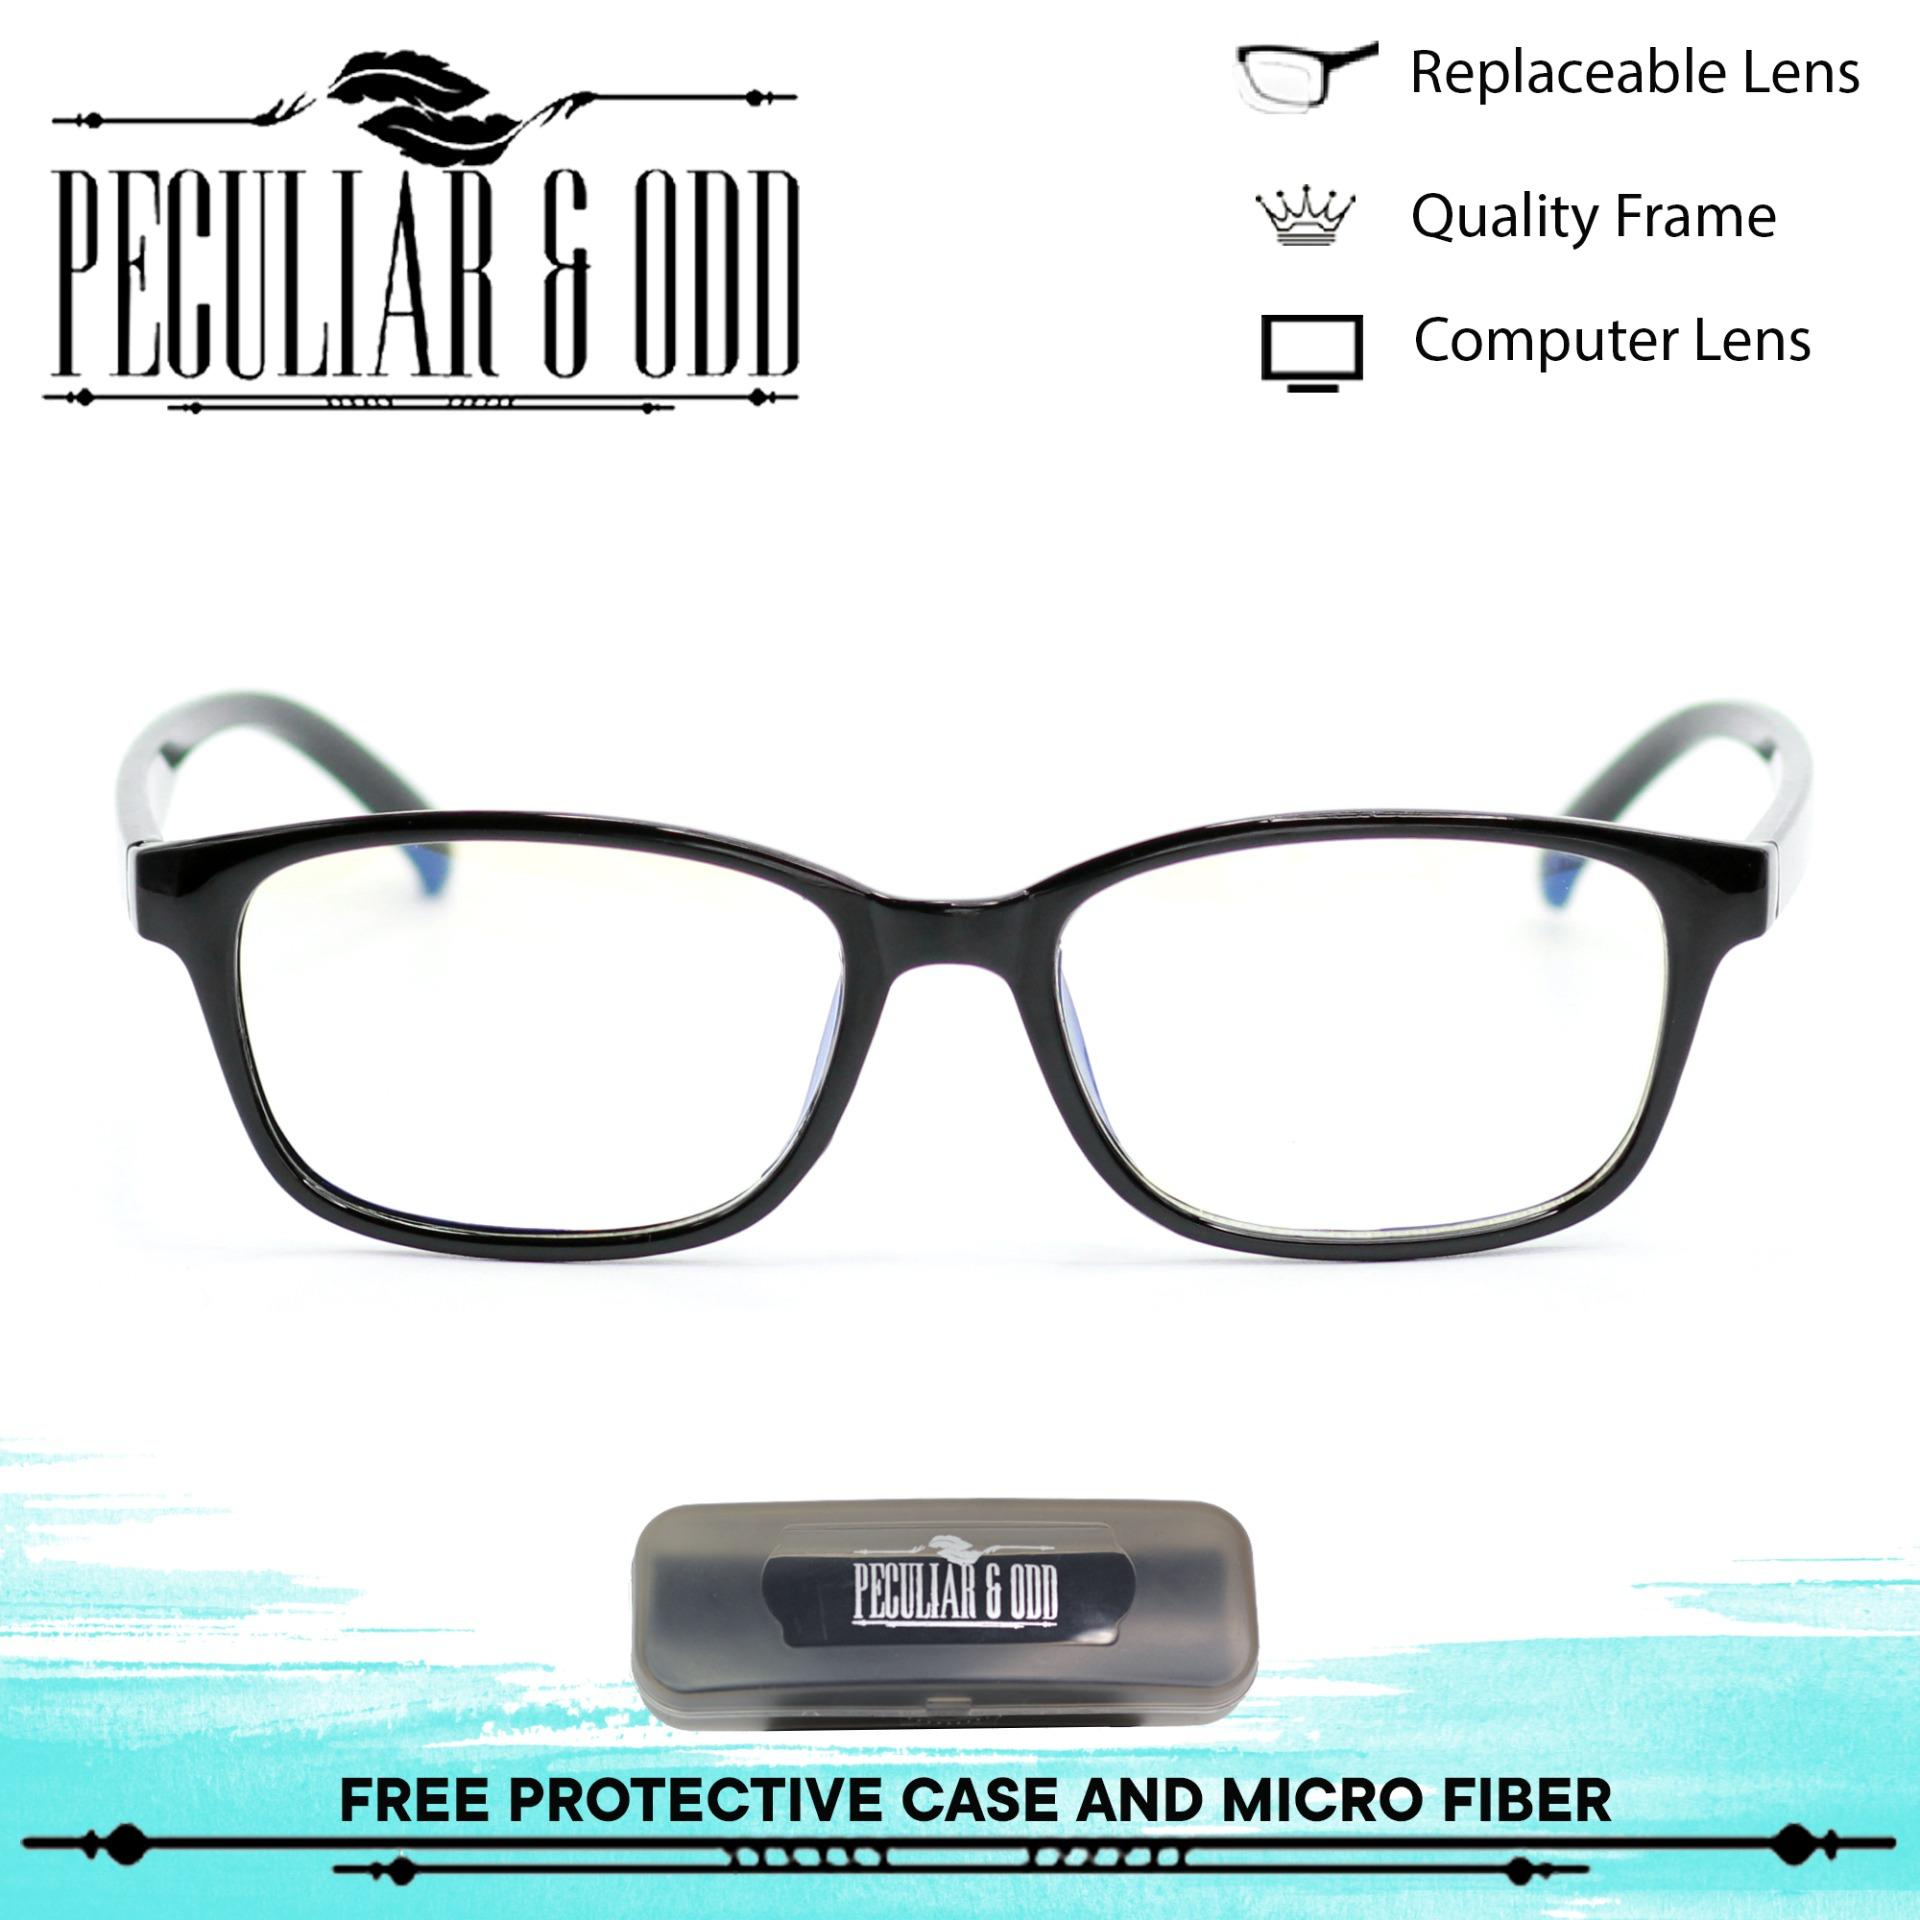 860cb6b718 Peculiar Square 3028 CoalBlackClear Anti Radiation Computer Eyeglass Optical  Replaceable Eyewear Unisex new